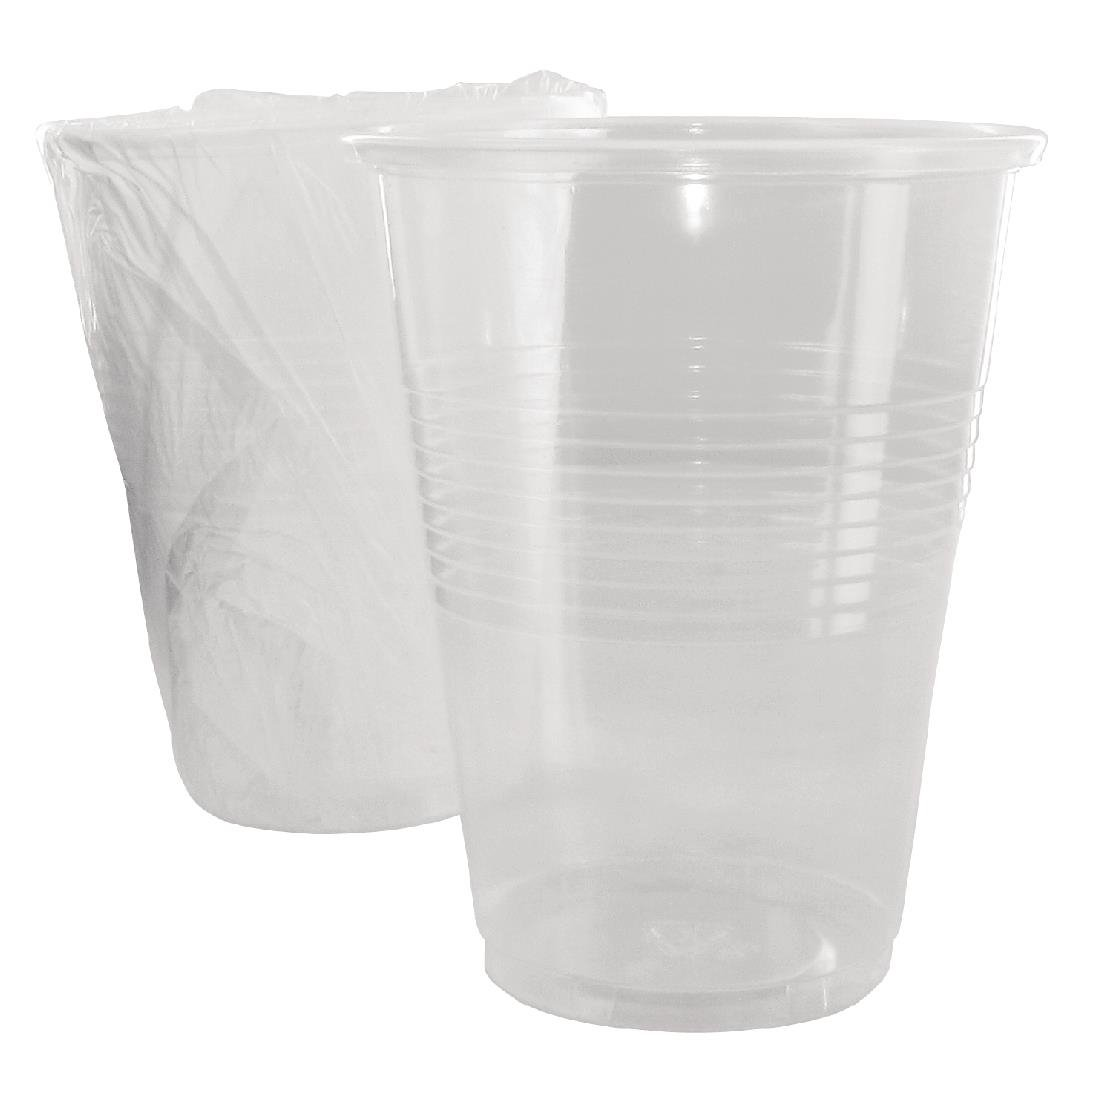 Image of Disposable Wrapped Tumblers 255ml (Pack of 500) Pack of 500